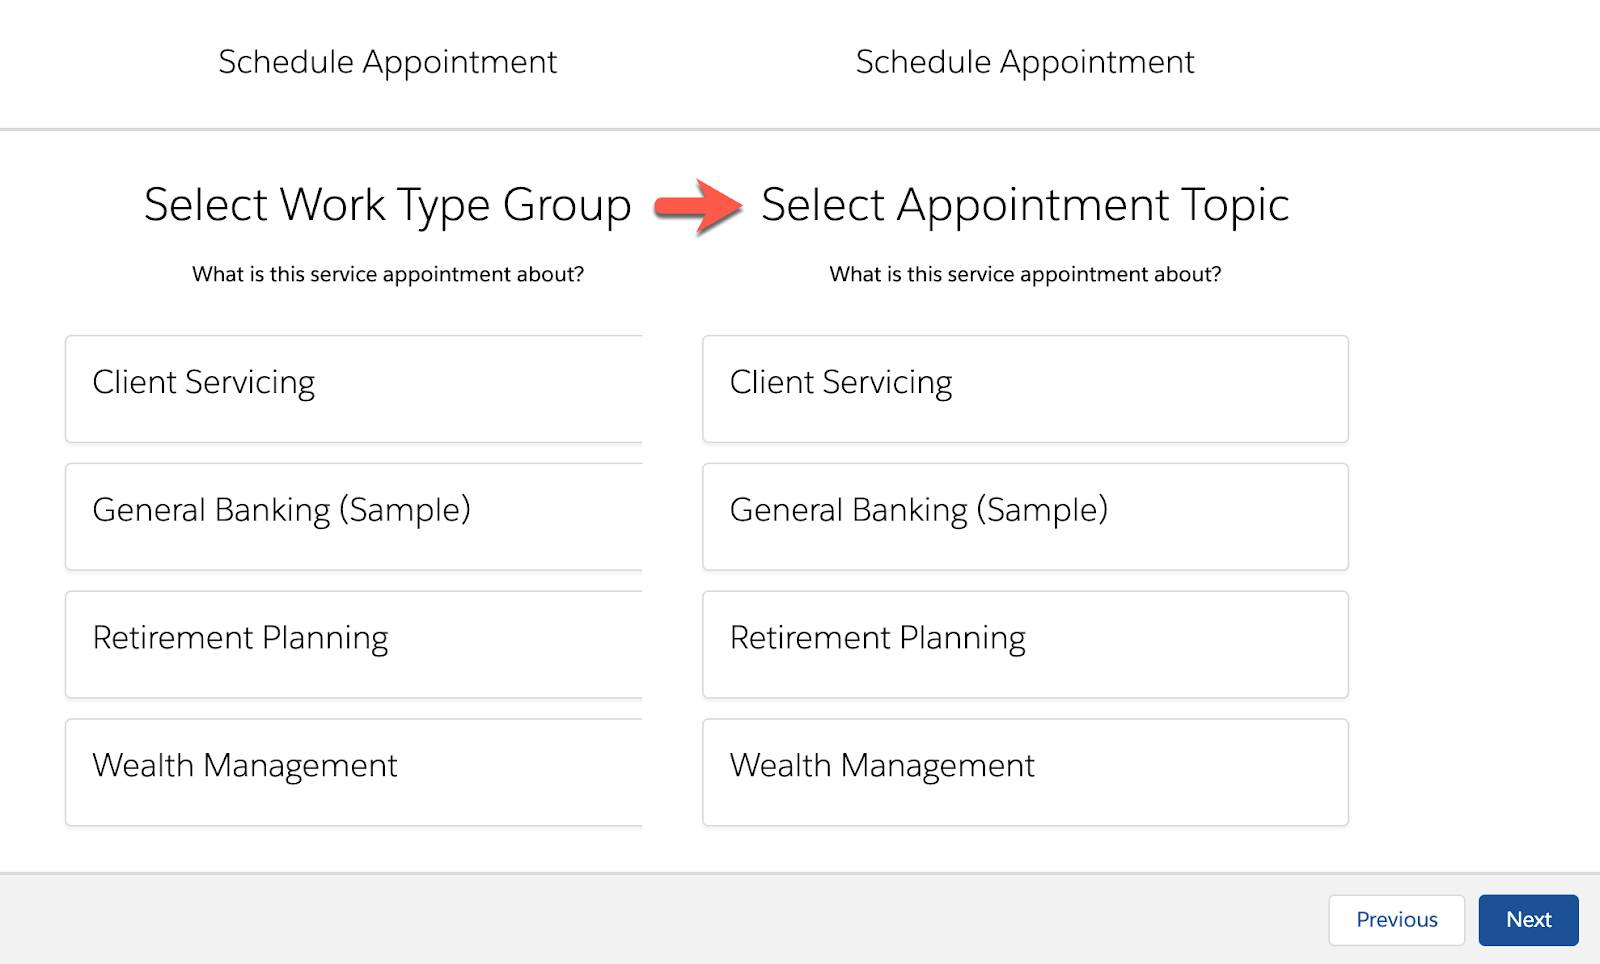 The Schedule Appointment window showing the change in name of Work Type Group.